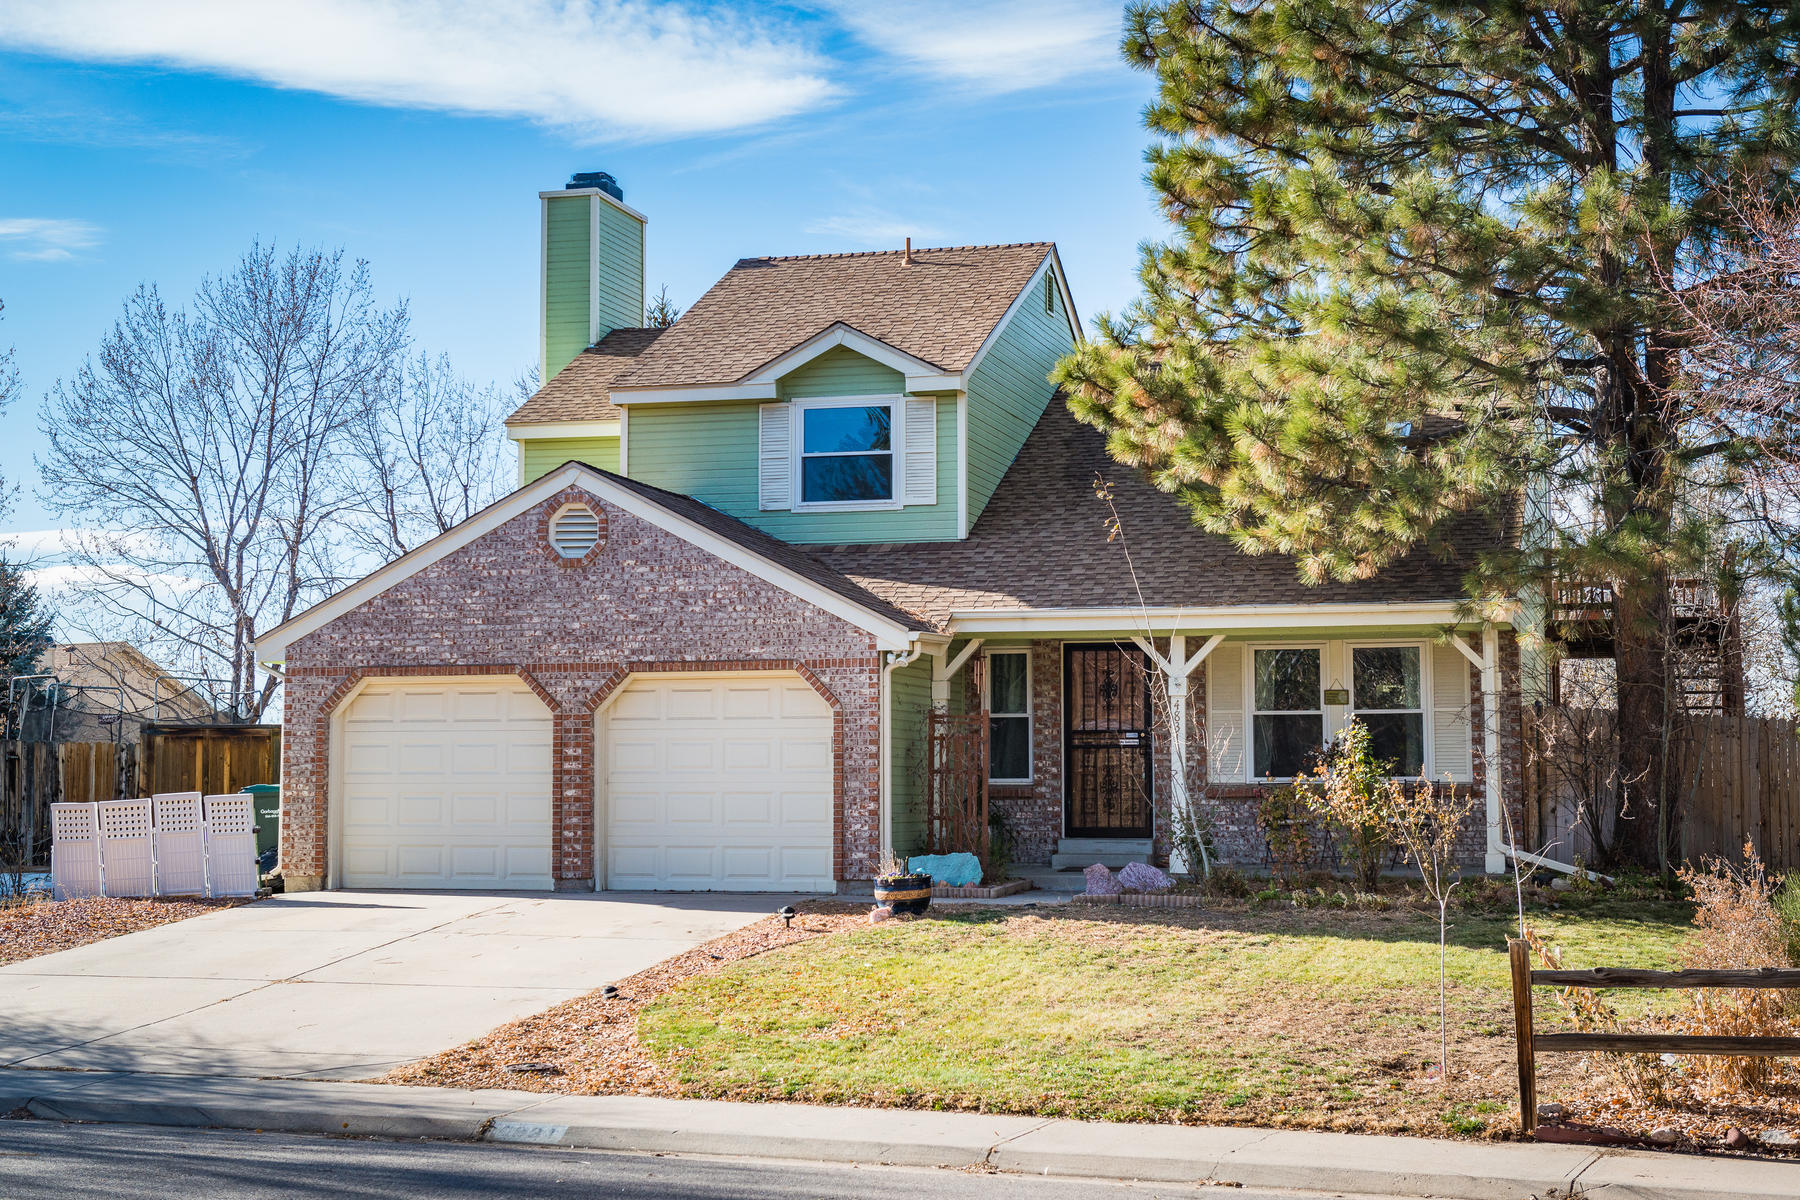 Single Family Home for Active at Beautifully Maintained Home in Cherry Creek School District 4831 South Evanston Street Aurora, Colorado 80015 United States